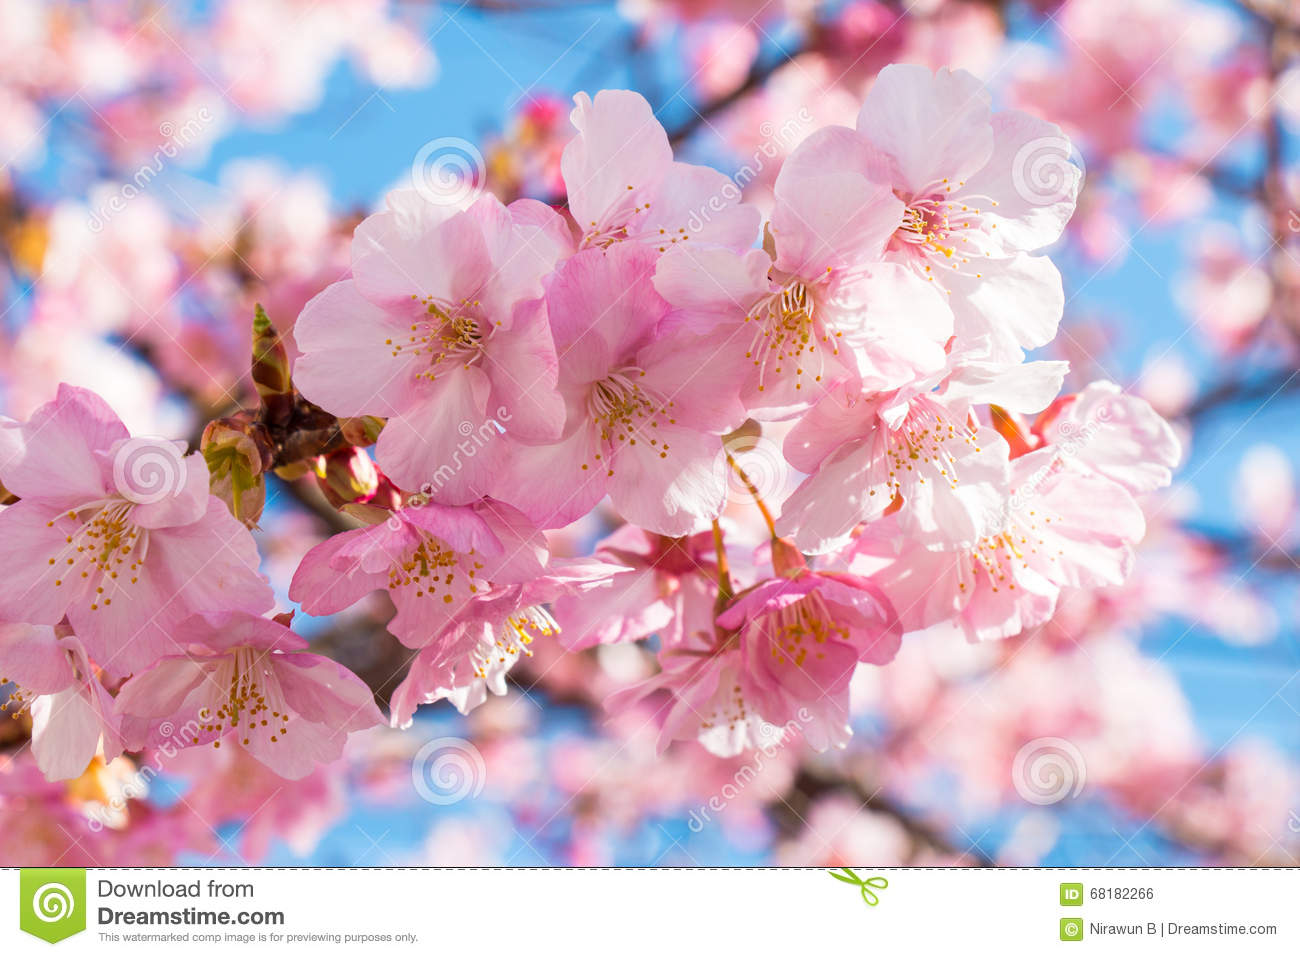 Pink sakura cherry blossom is the most beautiful flower stock royalty free stock photo izmirmasajfo